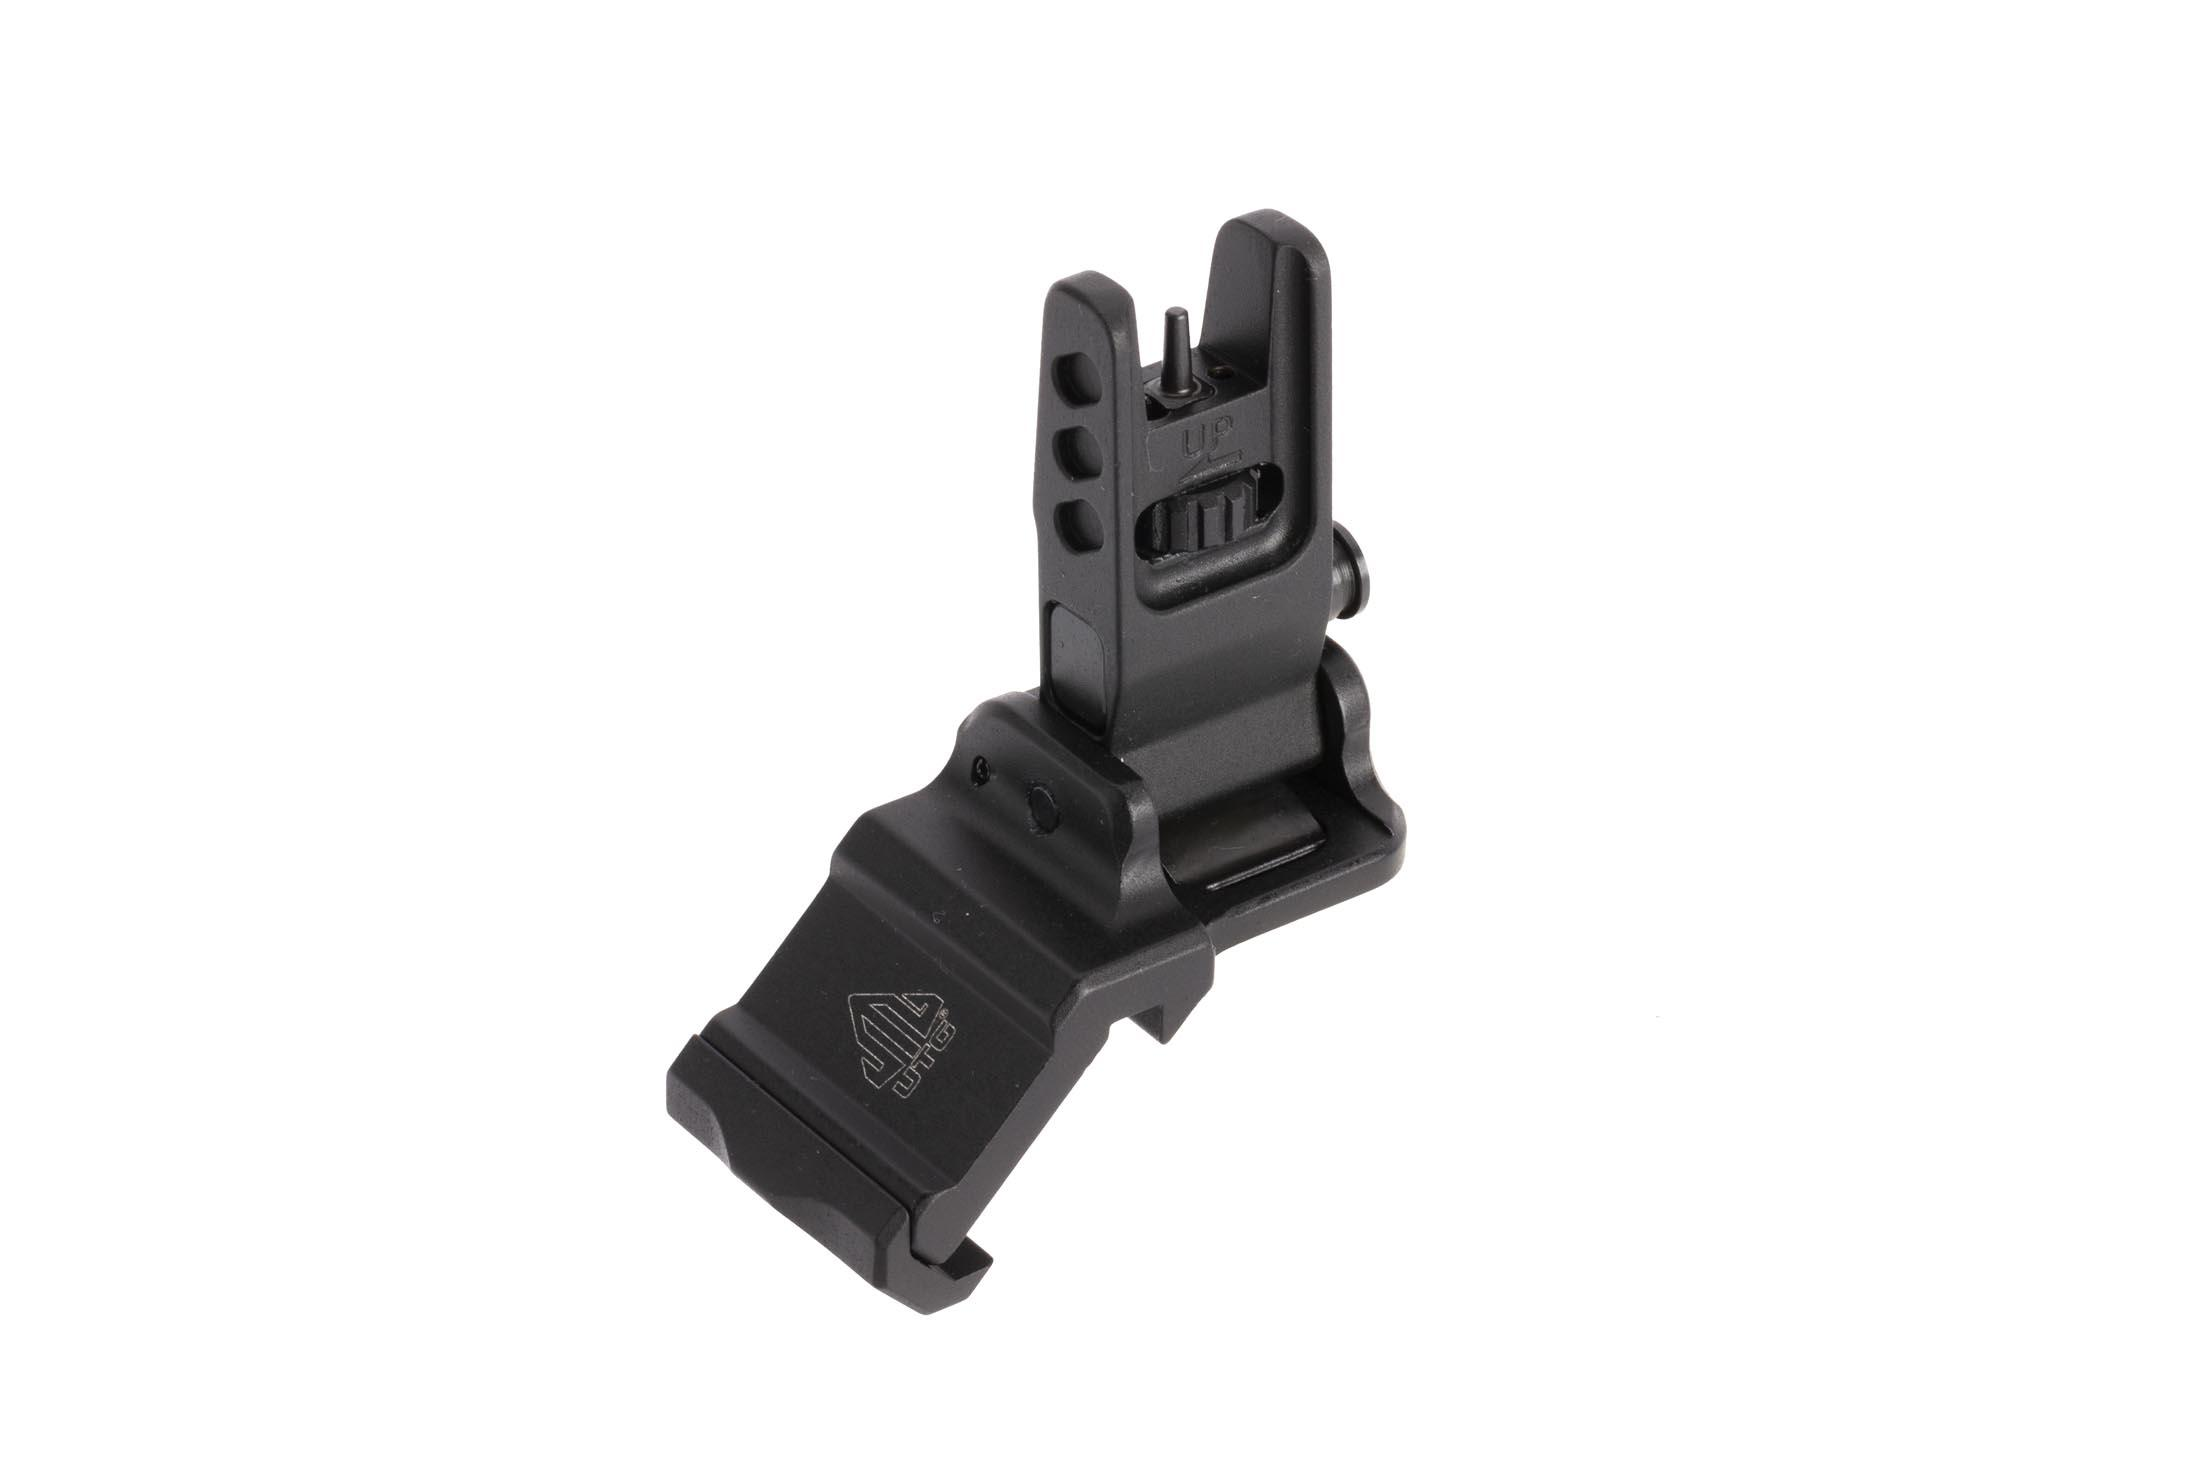 Leapers UTG ACCU-SYNC front sight installs easily to standard M1913 picatinny rails , ideal for right handed shooters.